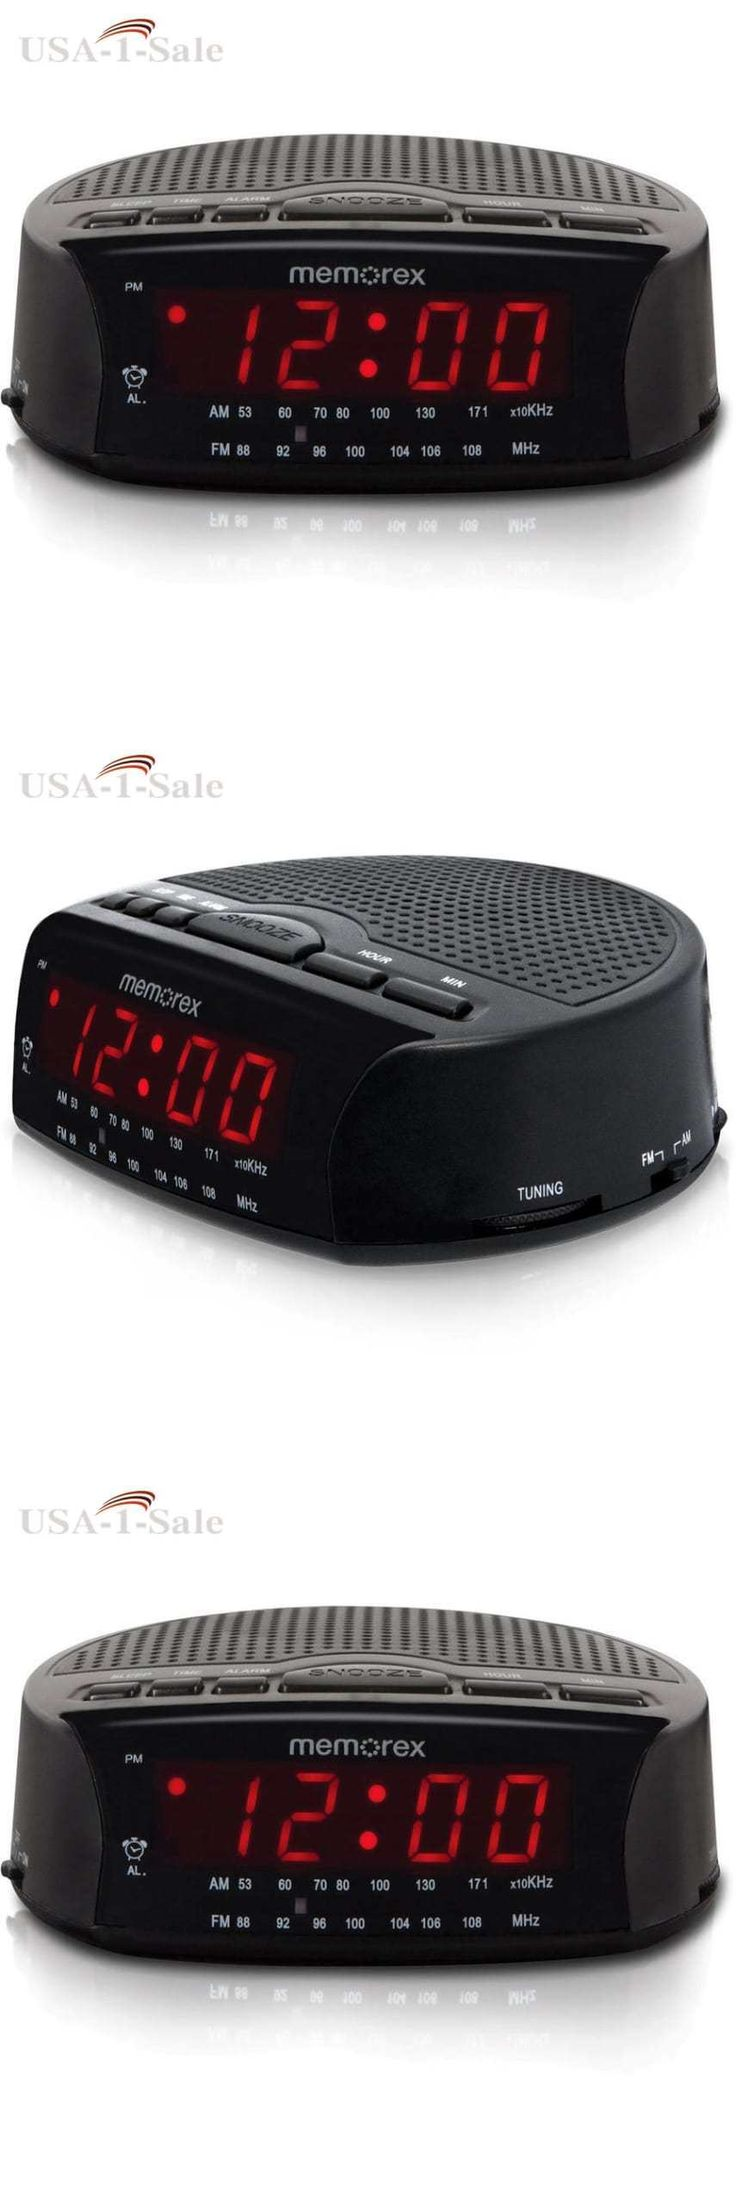 Digital Clocks and Clock Radios: Am/Fm Radio Alarm Clock Electric Digital Red Led With Snooze Black New -> BUY IT NOW ONLY: $51.79 on eBay!